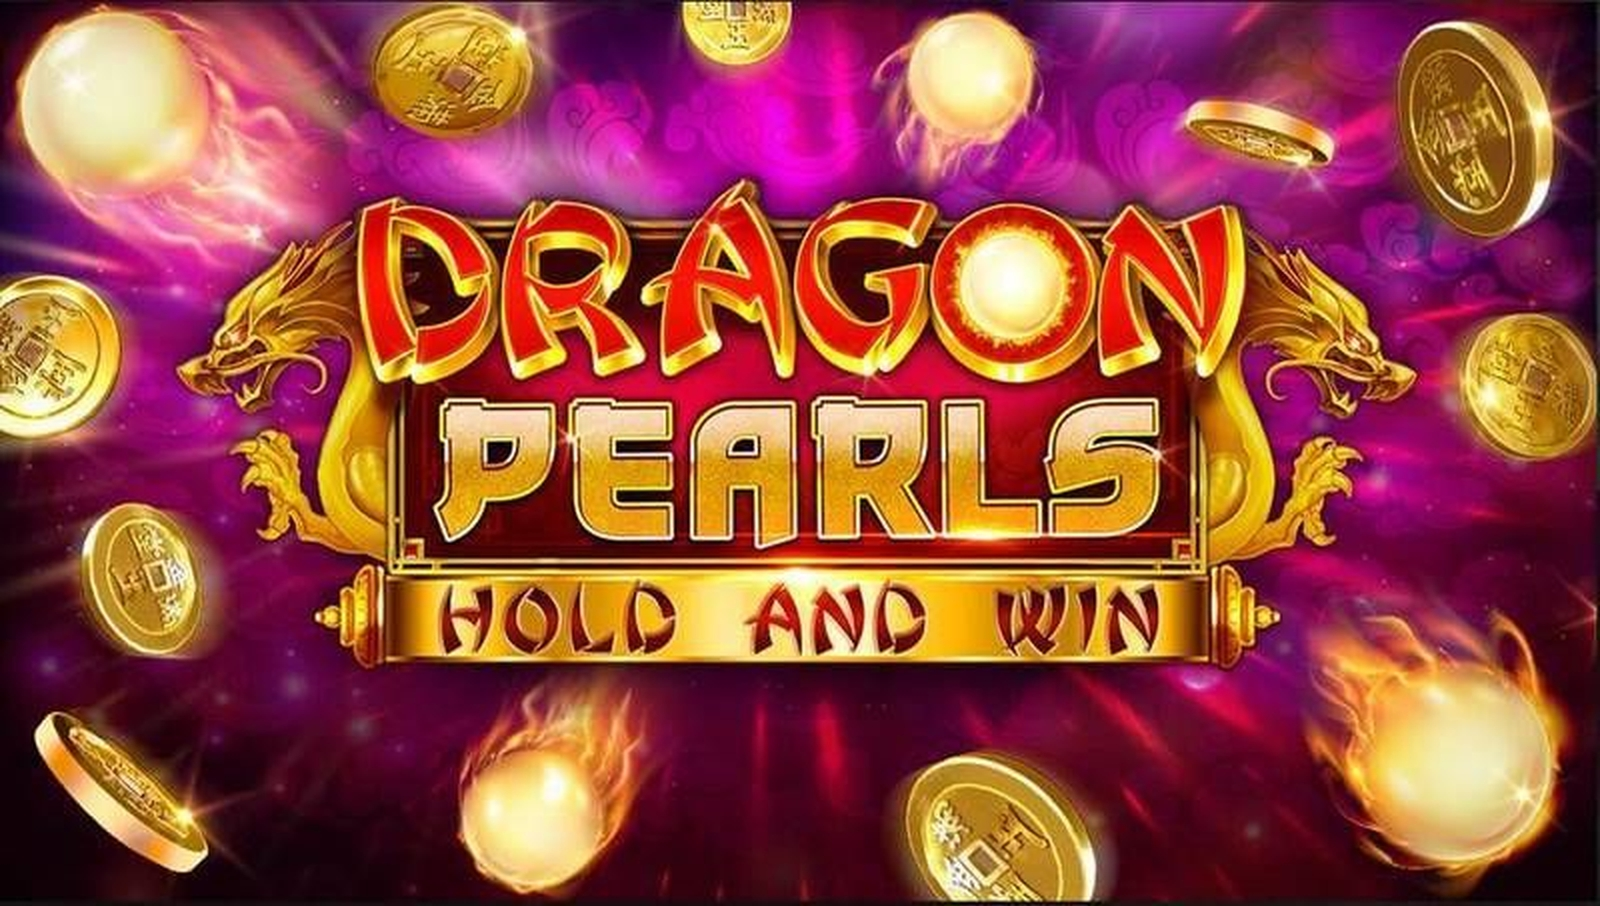 The Dragons And Pearls Online Slot Demo Game by GameArt